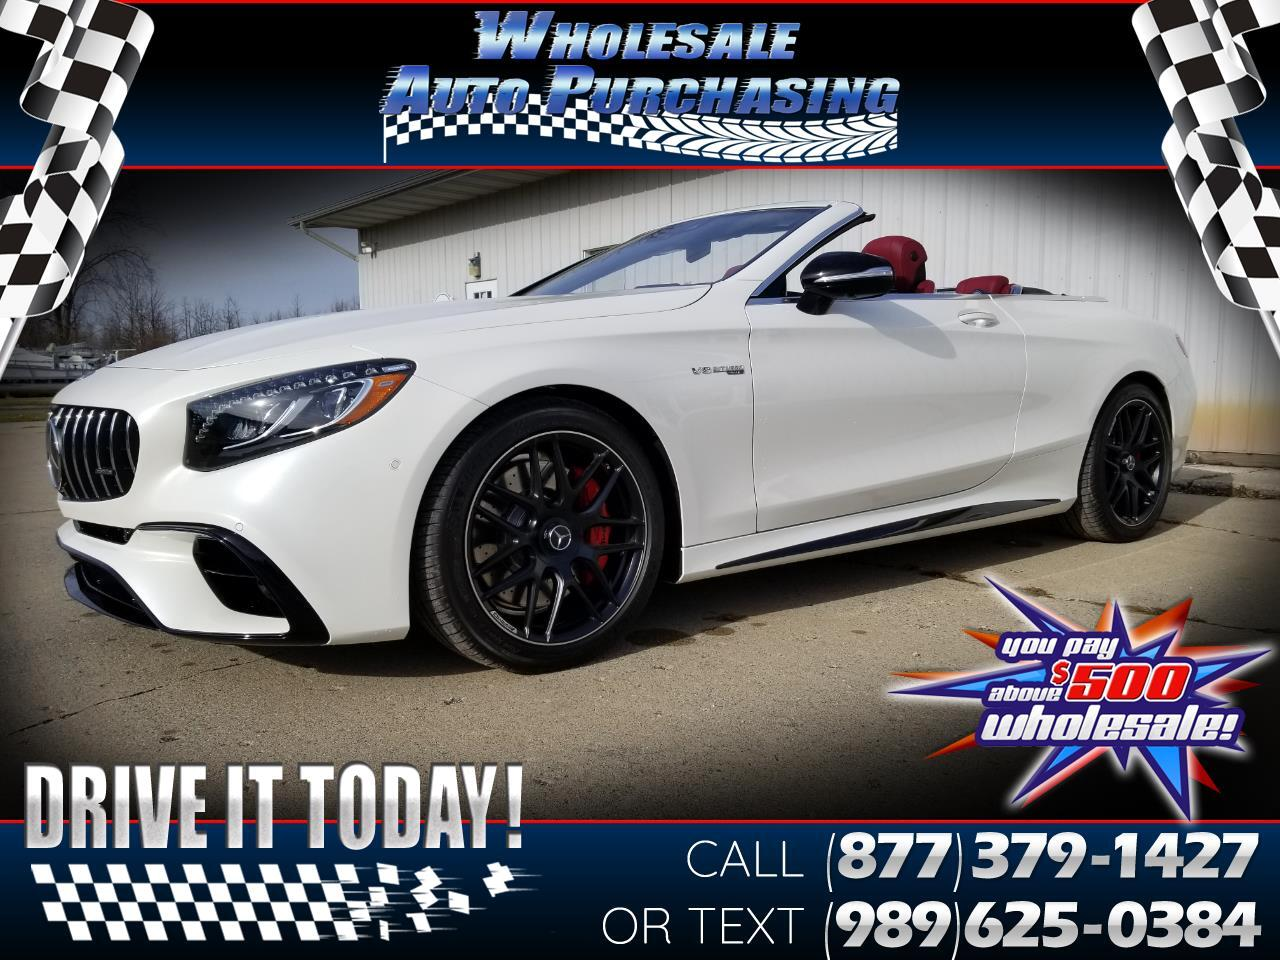 2019 Mercedes-Benz S-Class AMG S 63 4MATIC Cabriolet